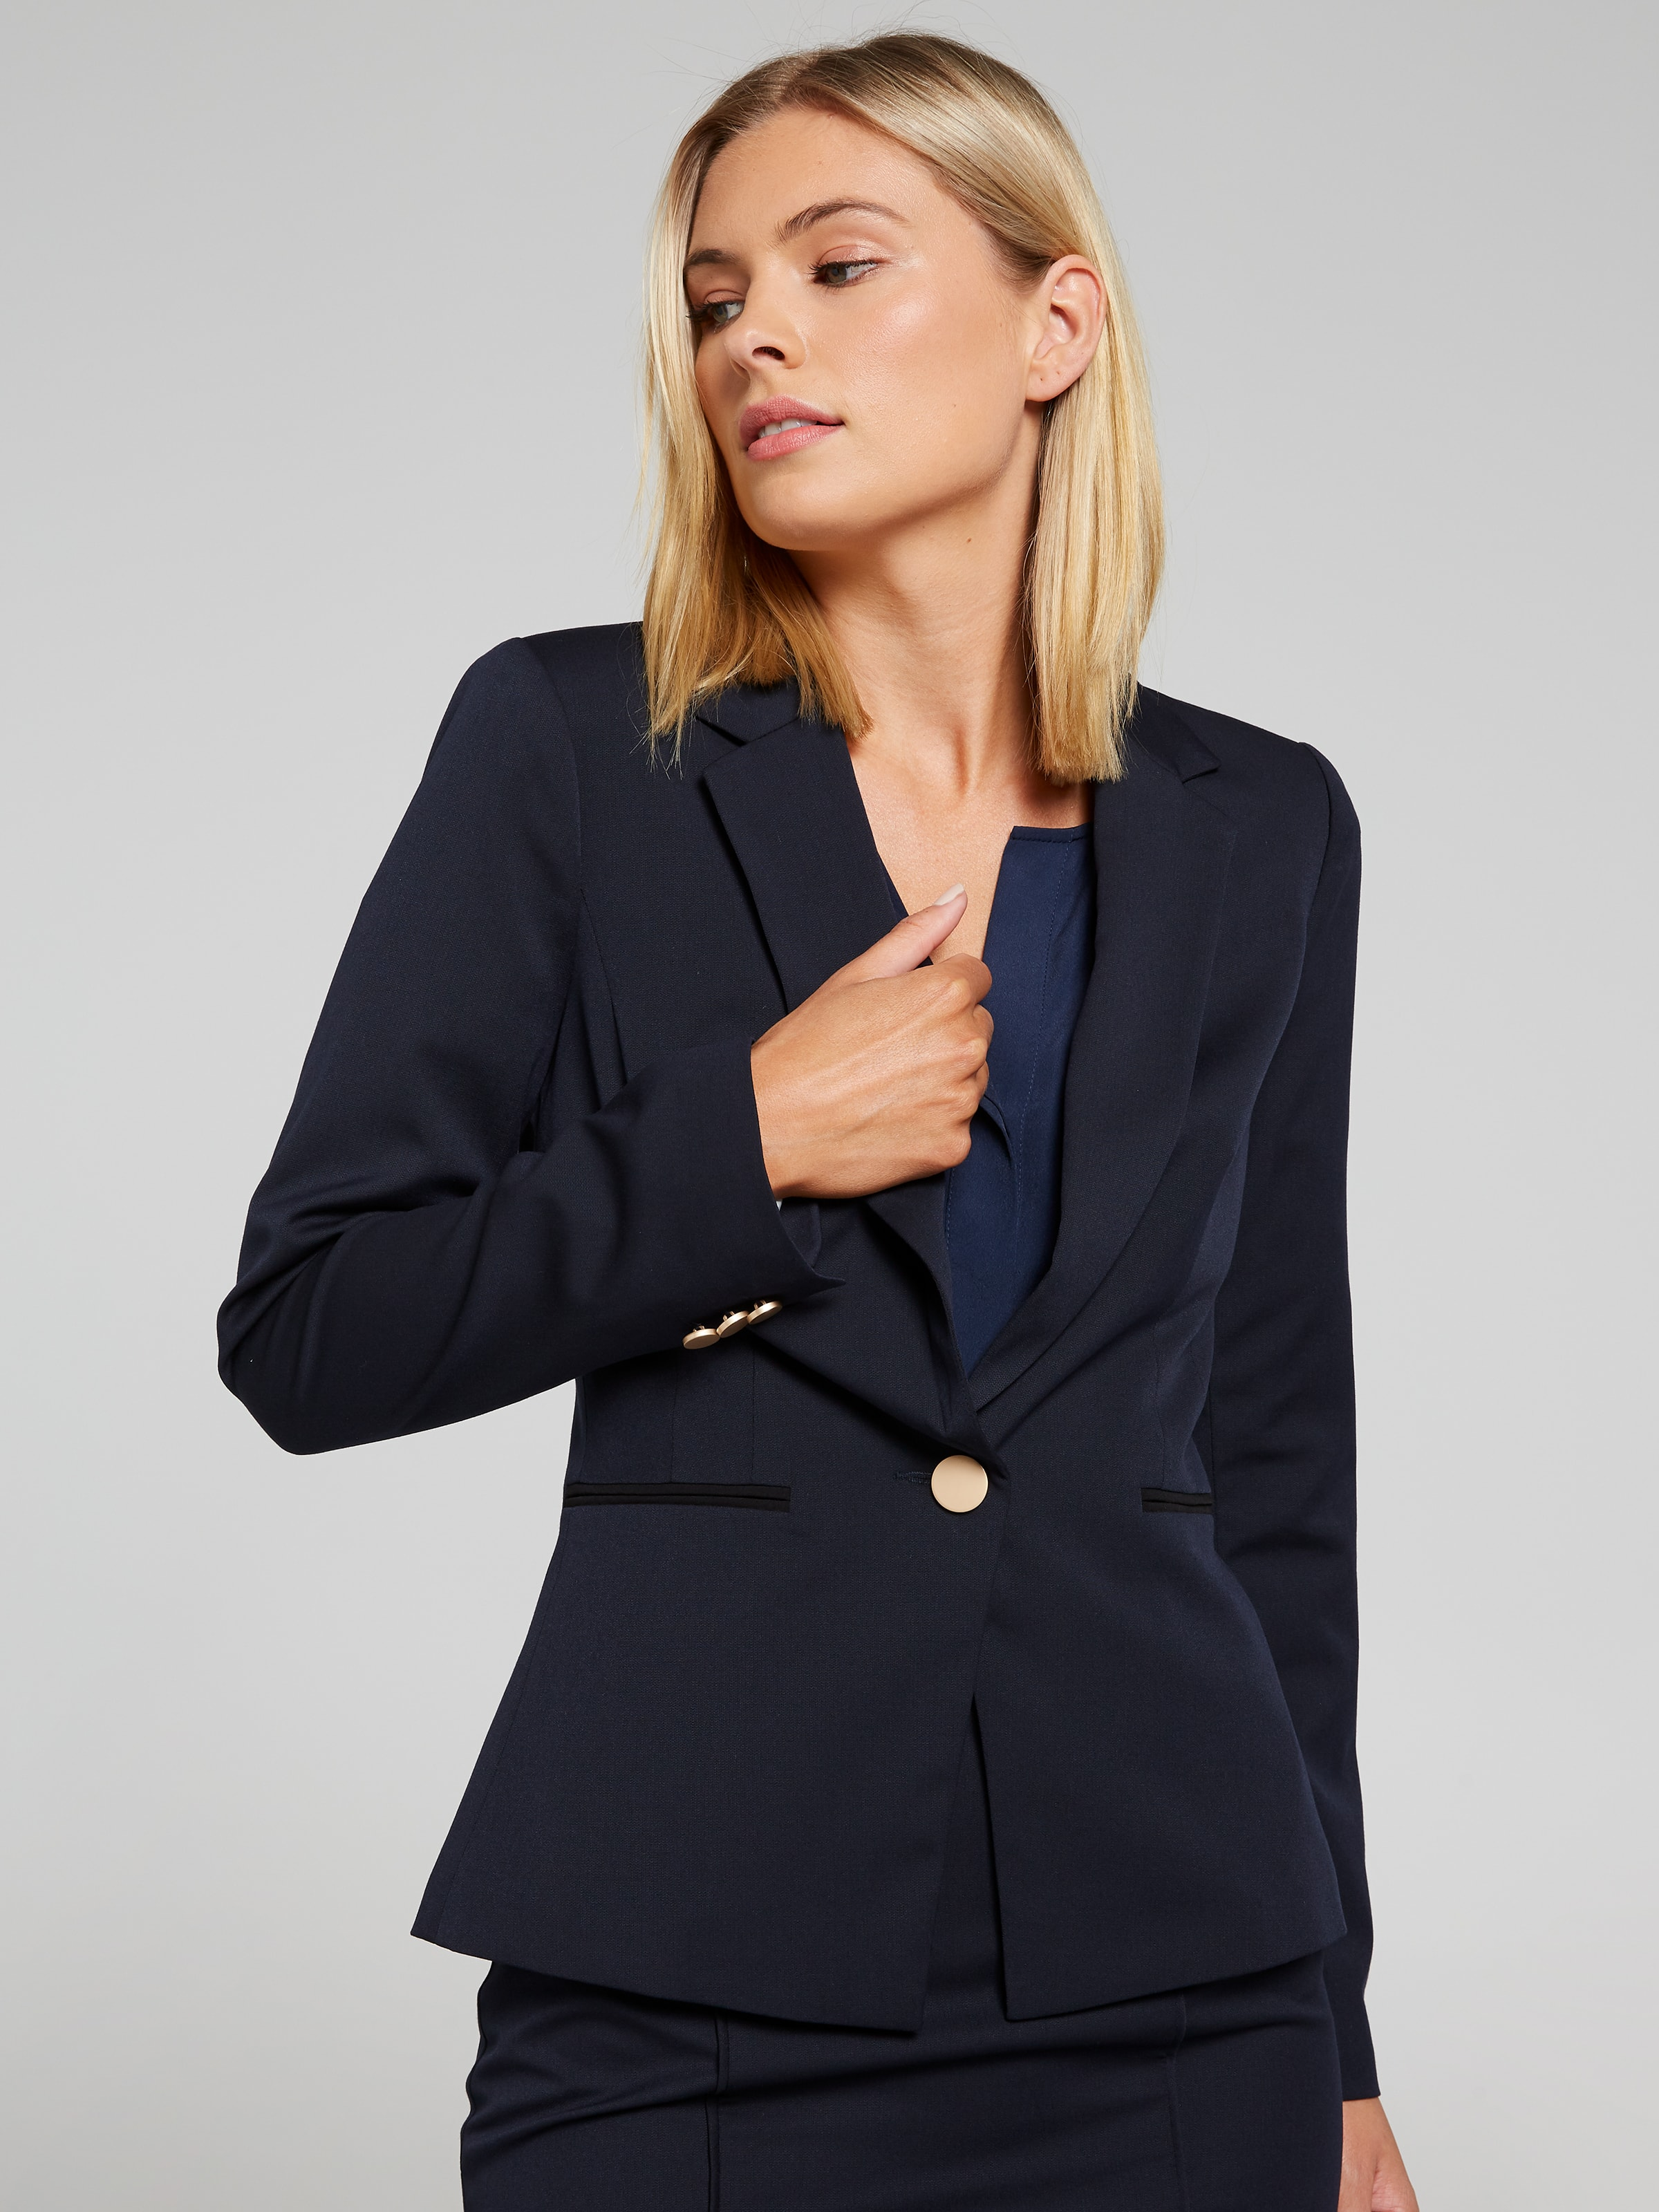 Portmans The Silicon Valley Suit Jacket